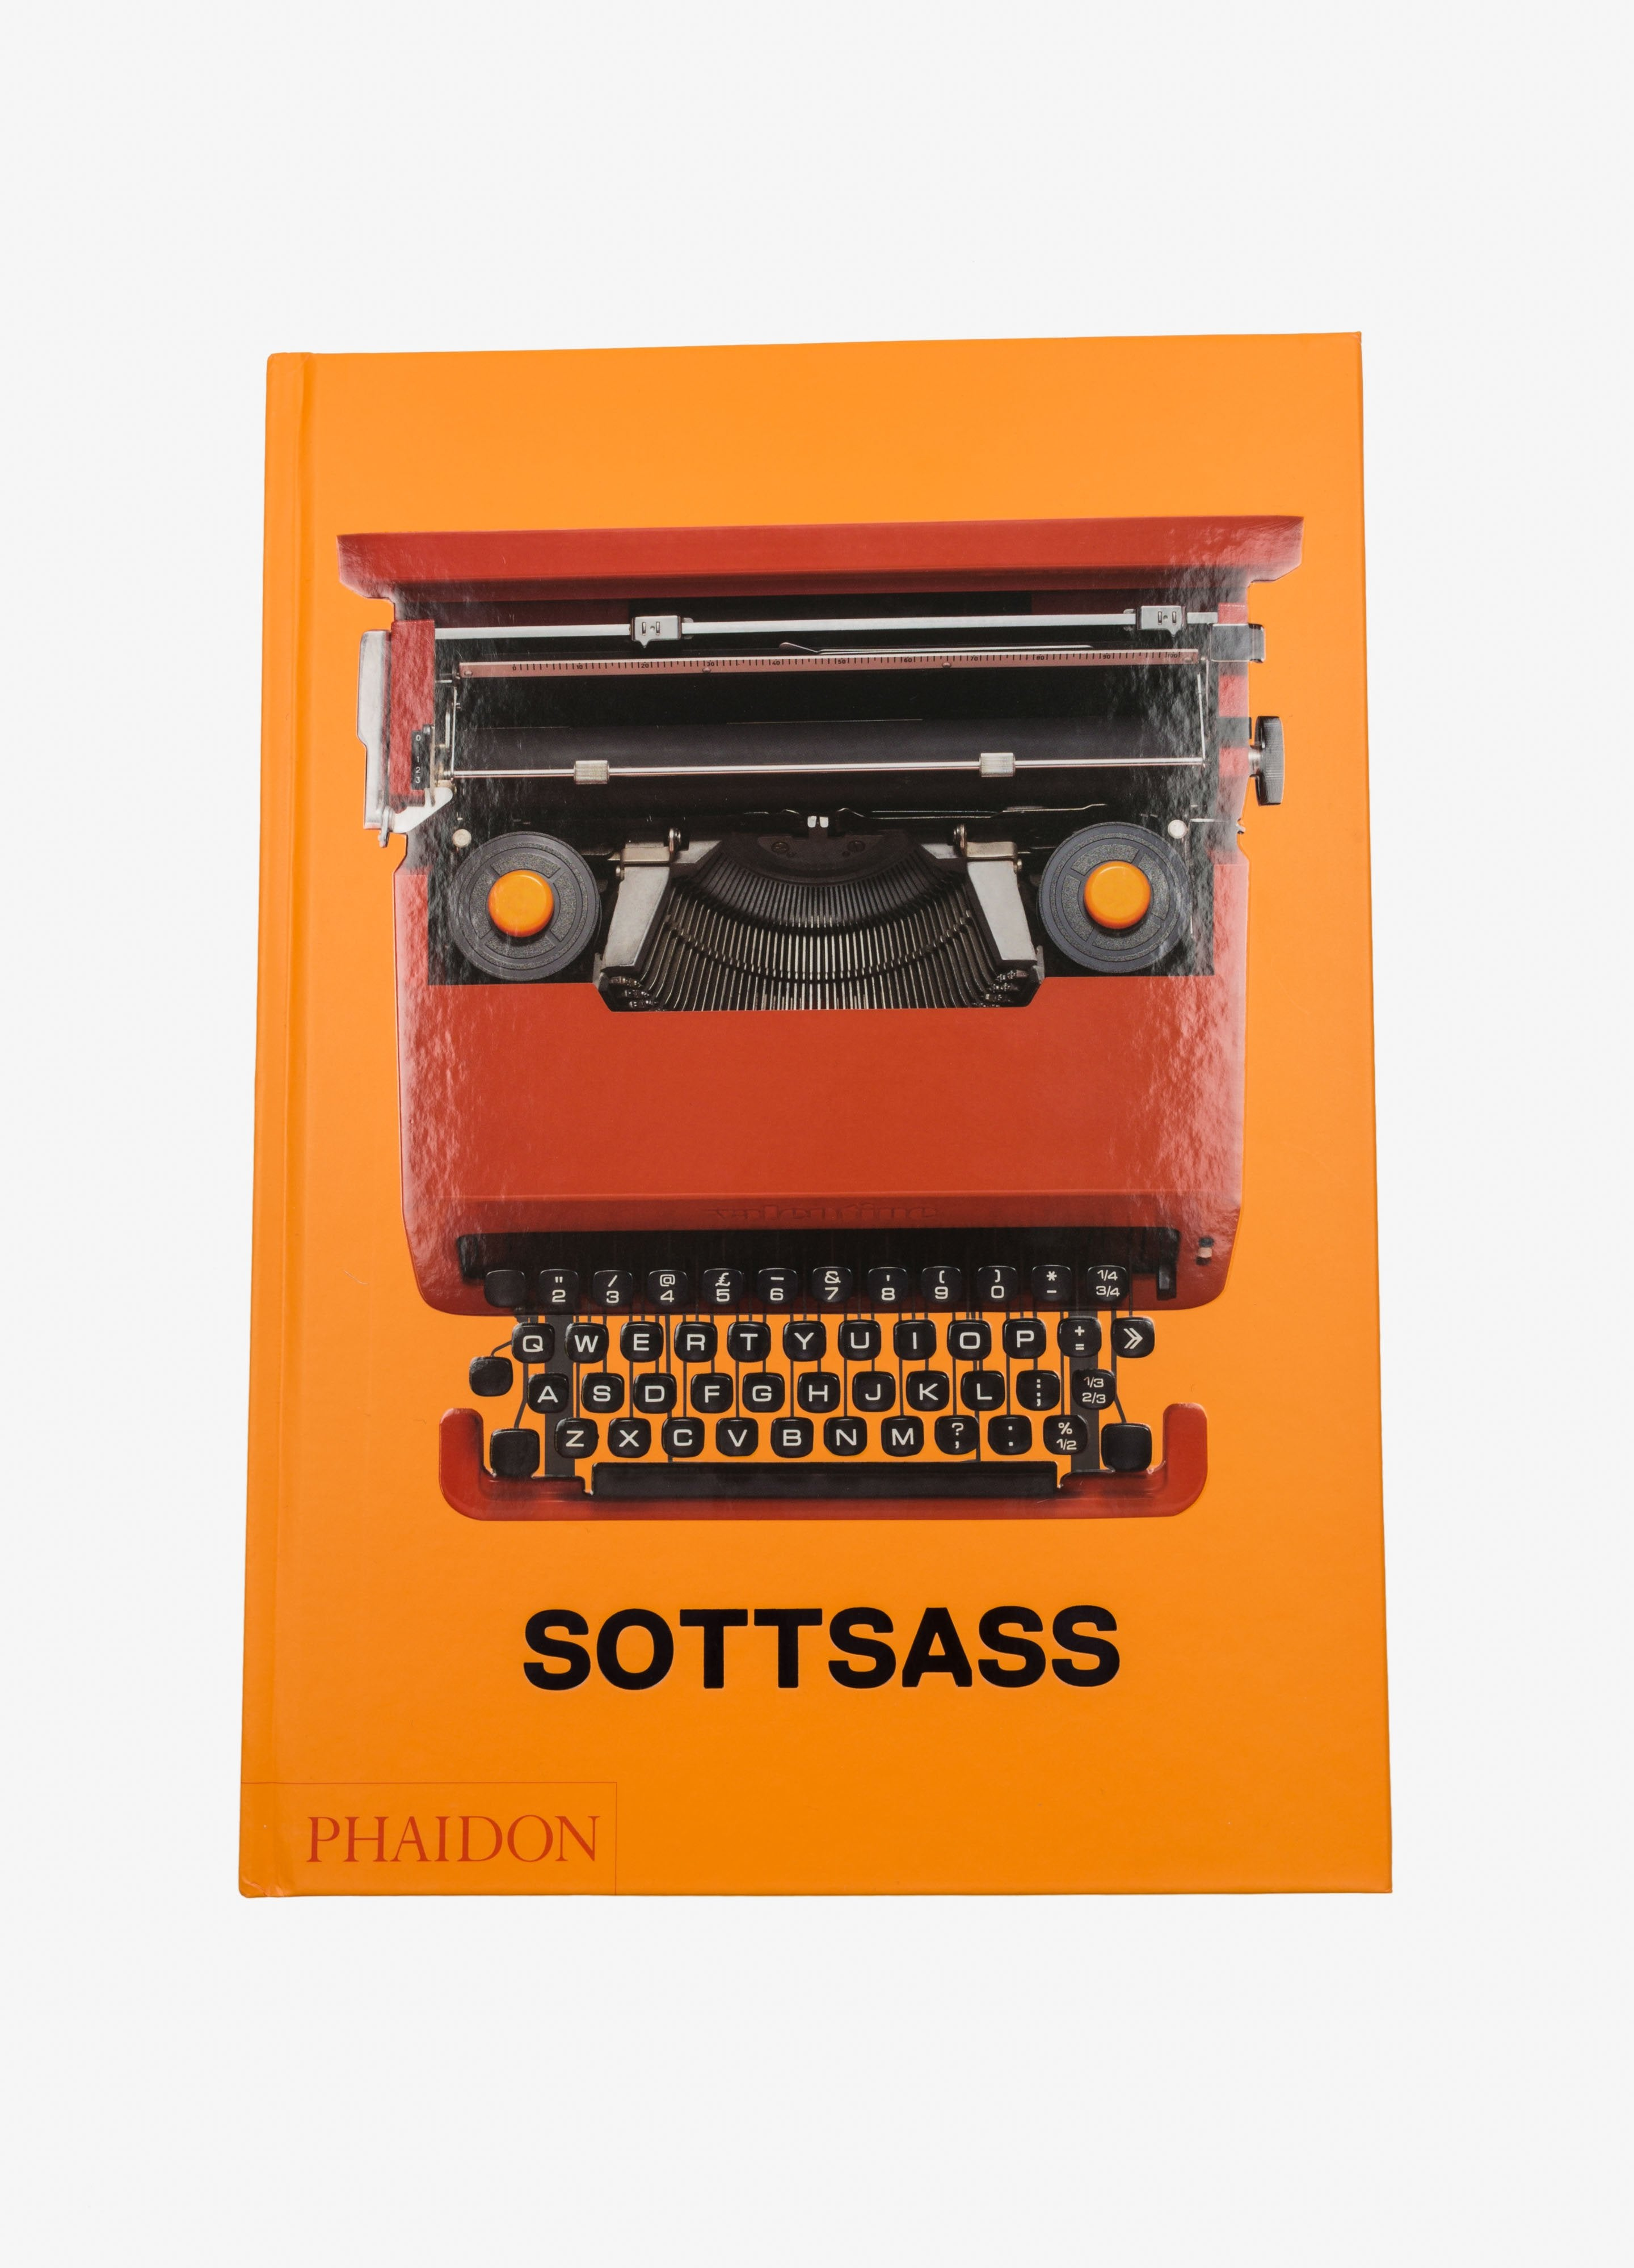 Philippe Thomé: Ettore Sottsass